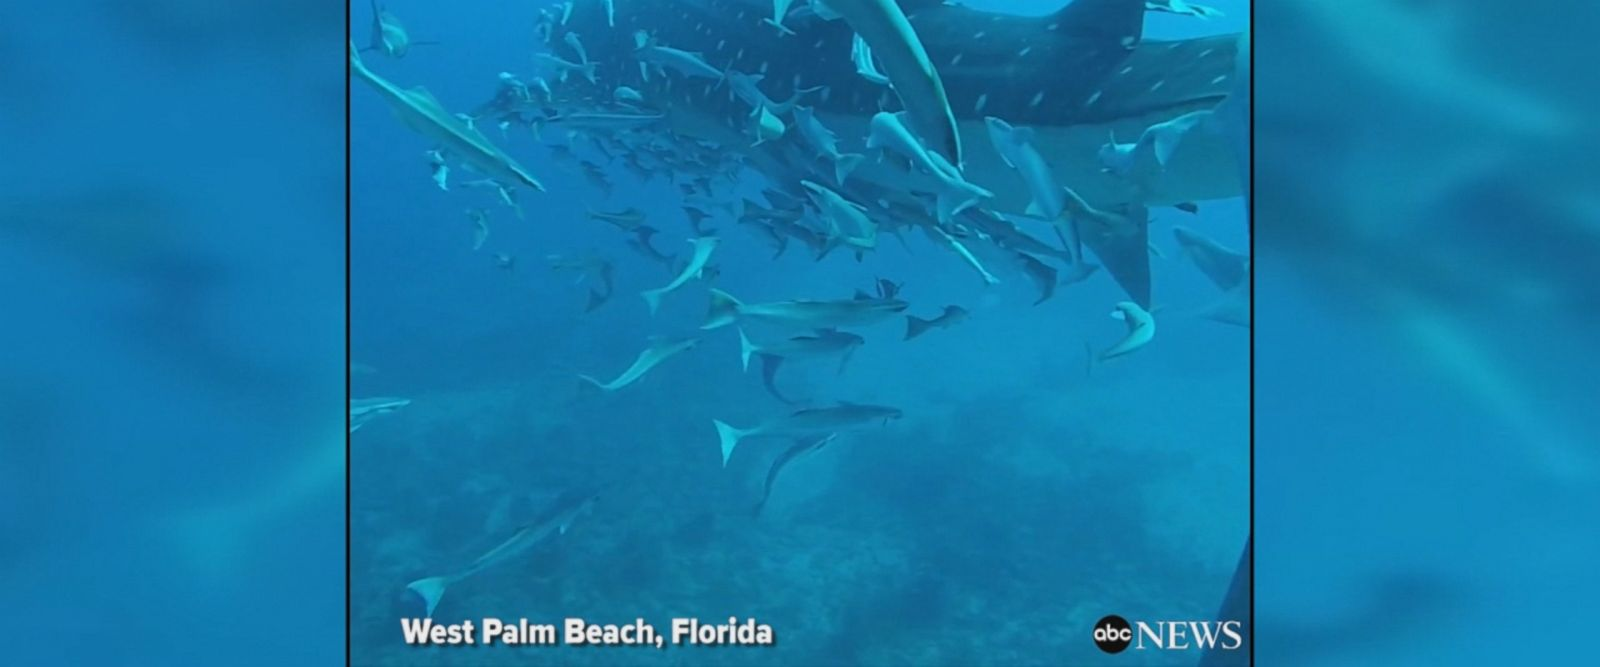 Mesmerizing video shows massive whale shark, the largest species of fish known to man, gliding past divers off of West Palm Beach, Florida.